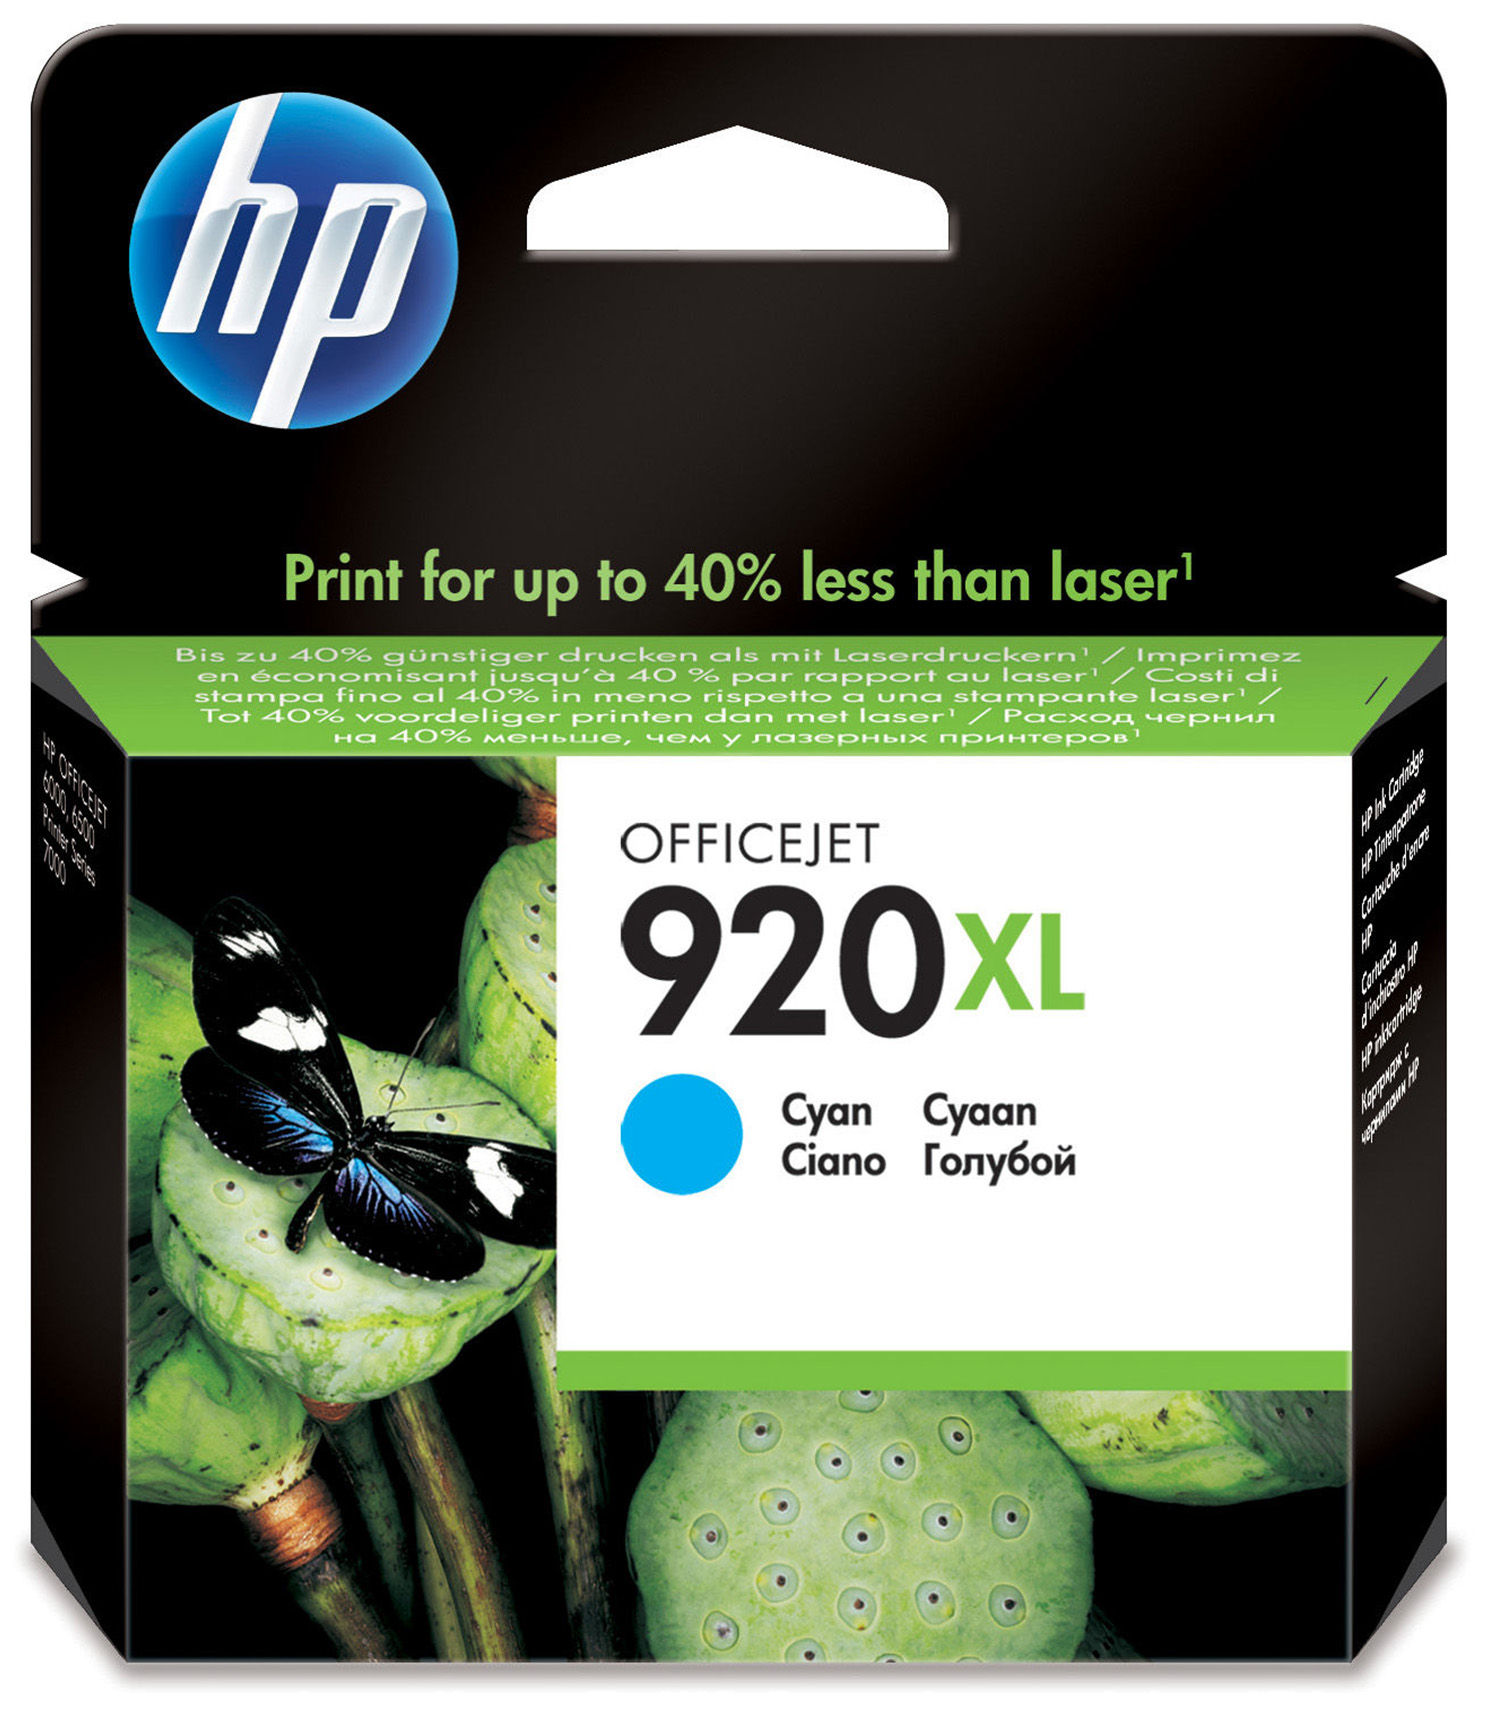 Cd972ae HP Hp 920xl Cyan Ink Cartridge - AD01